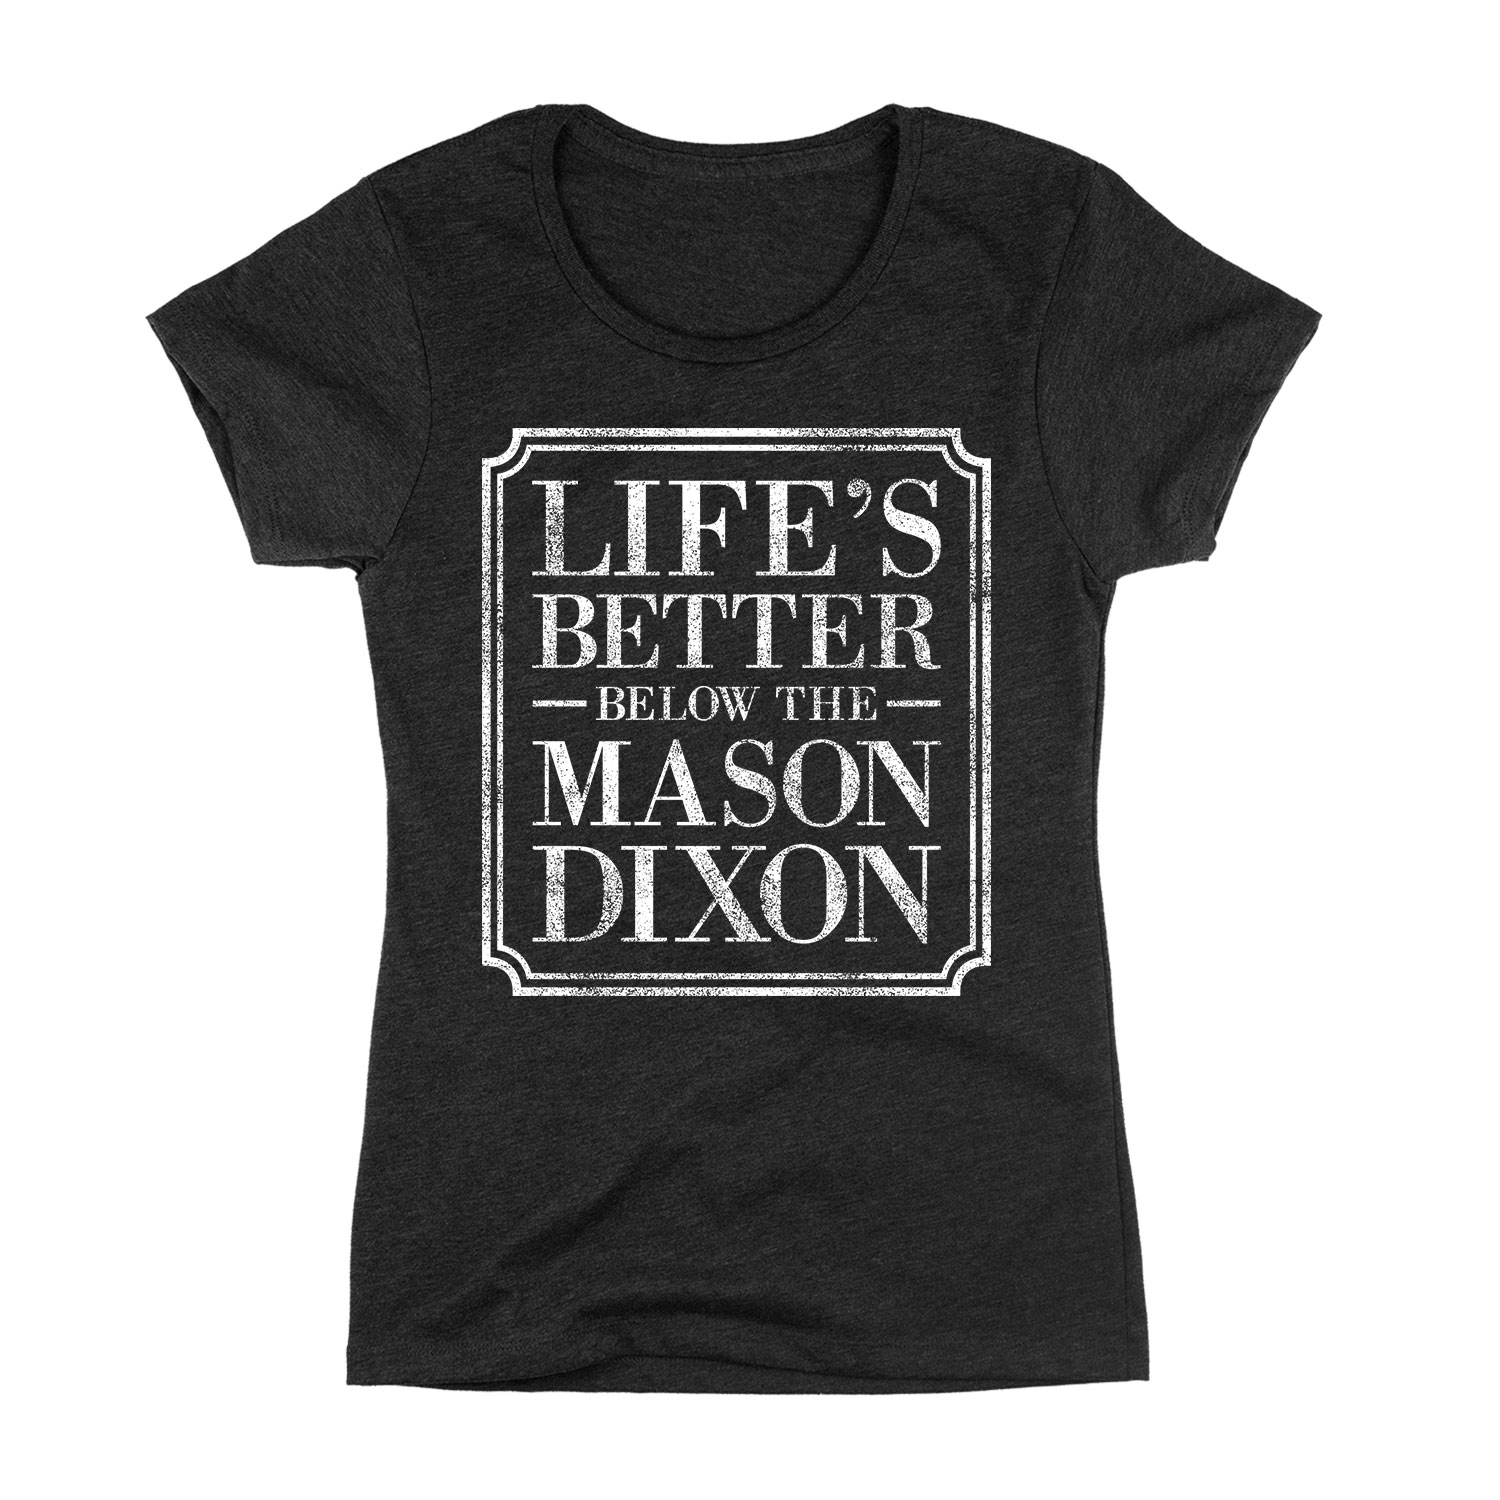 Lifes Better Below The Mason Dixon-Adult LADIES SHORT SLEEVE TEE